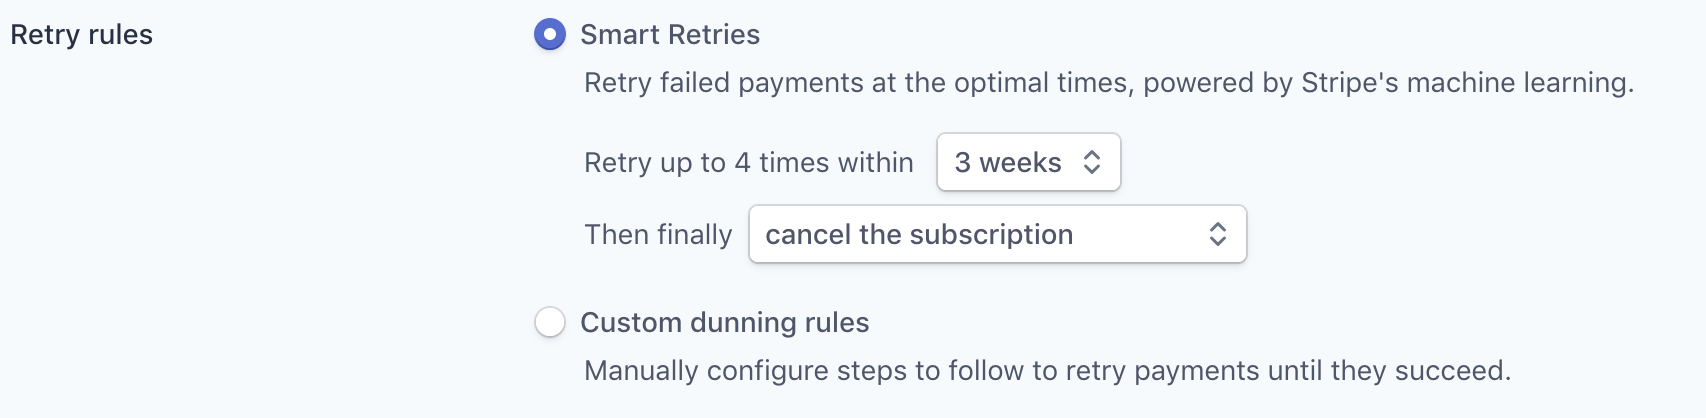 Configuring & Troubleshooting with Stripe - MemberPress User Manual